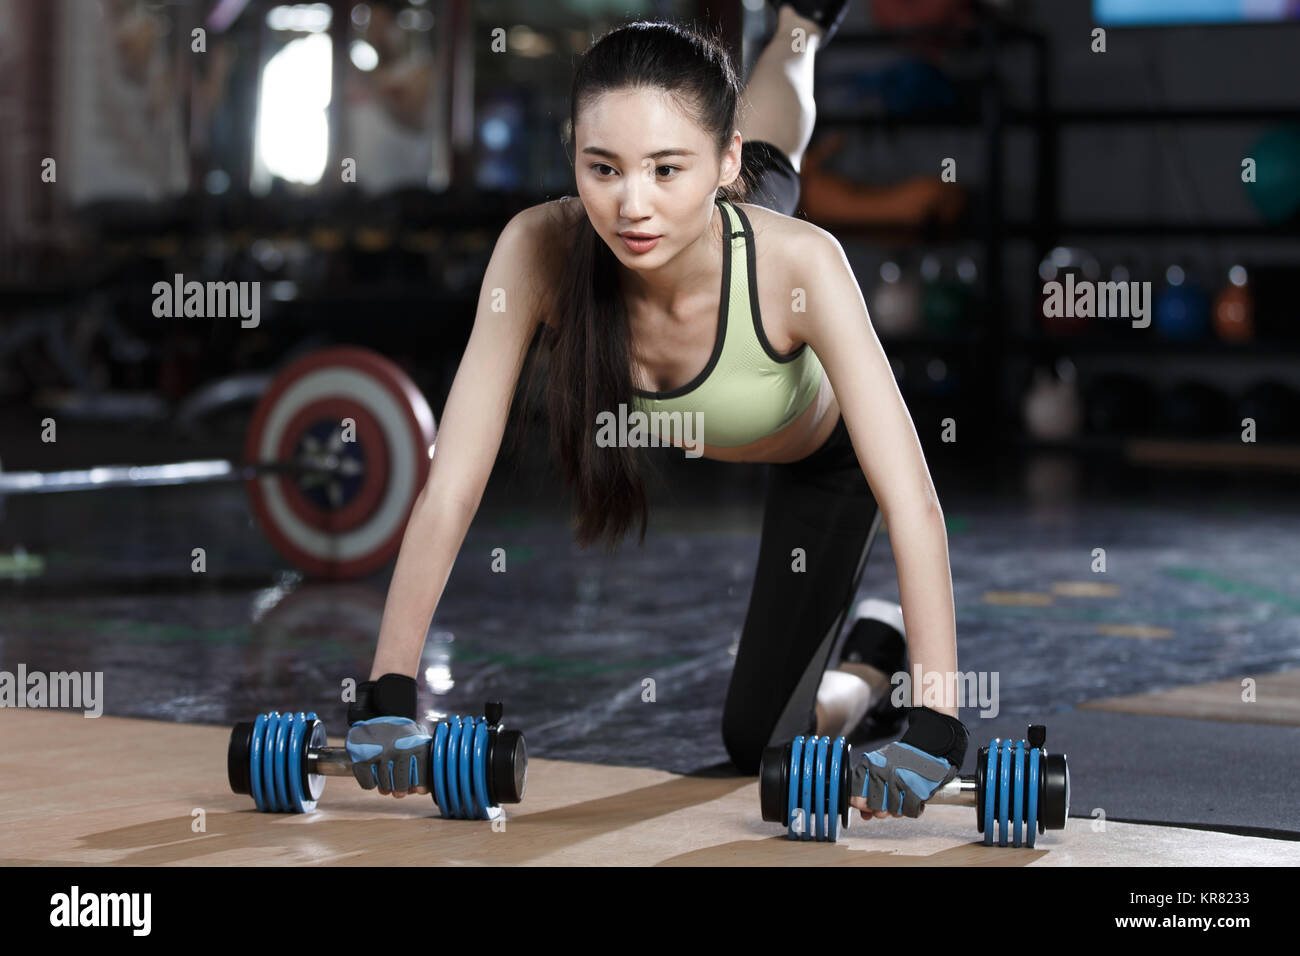 Young women exercise at the gym - Stock Image